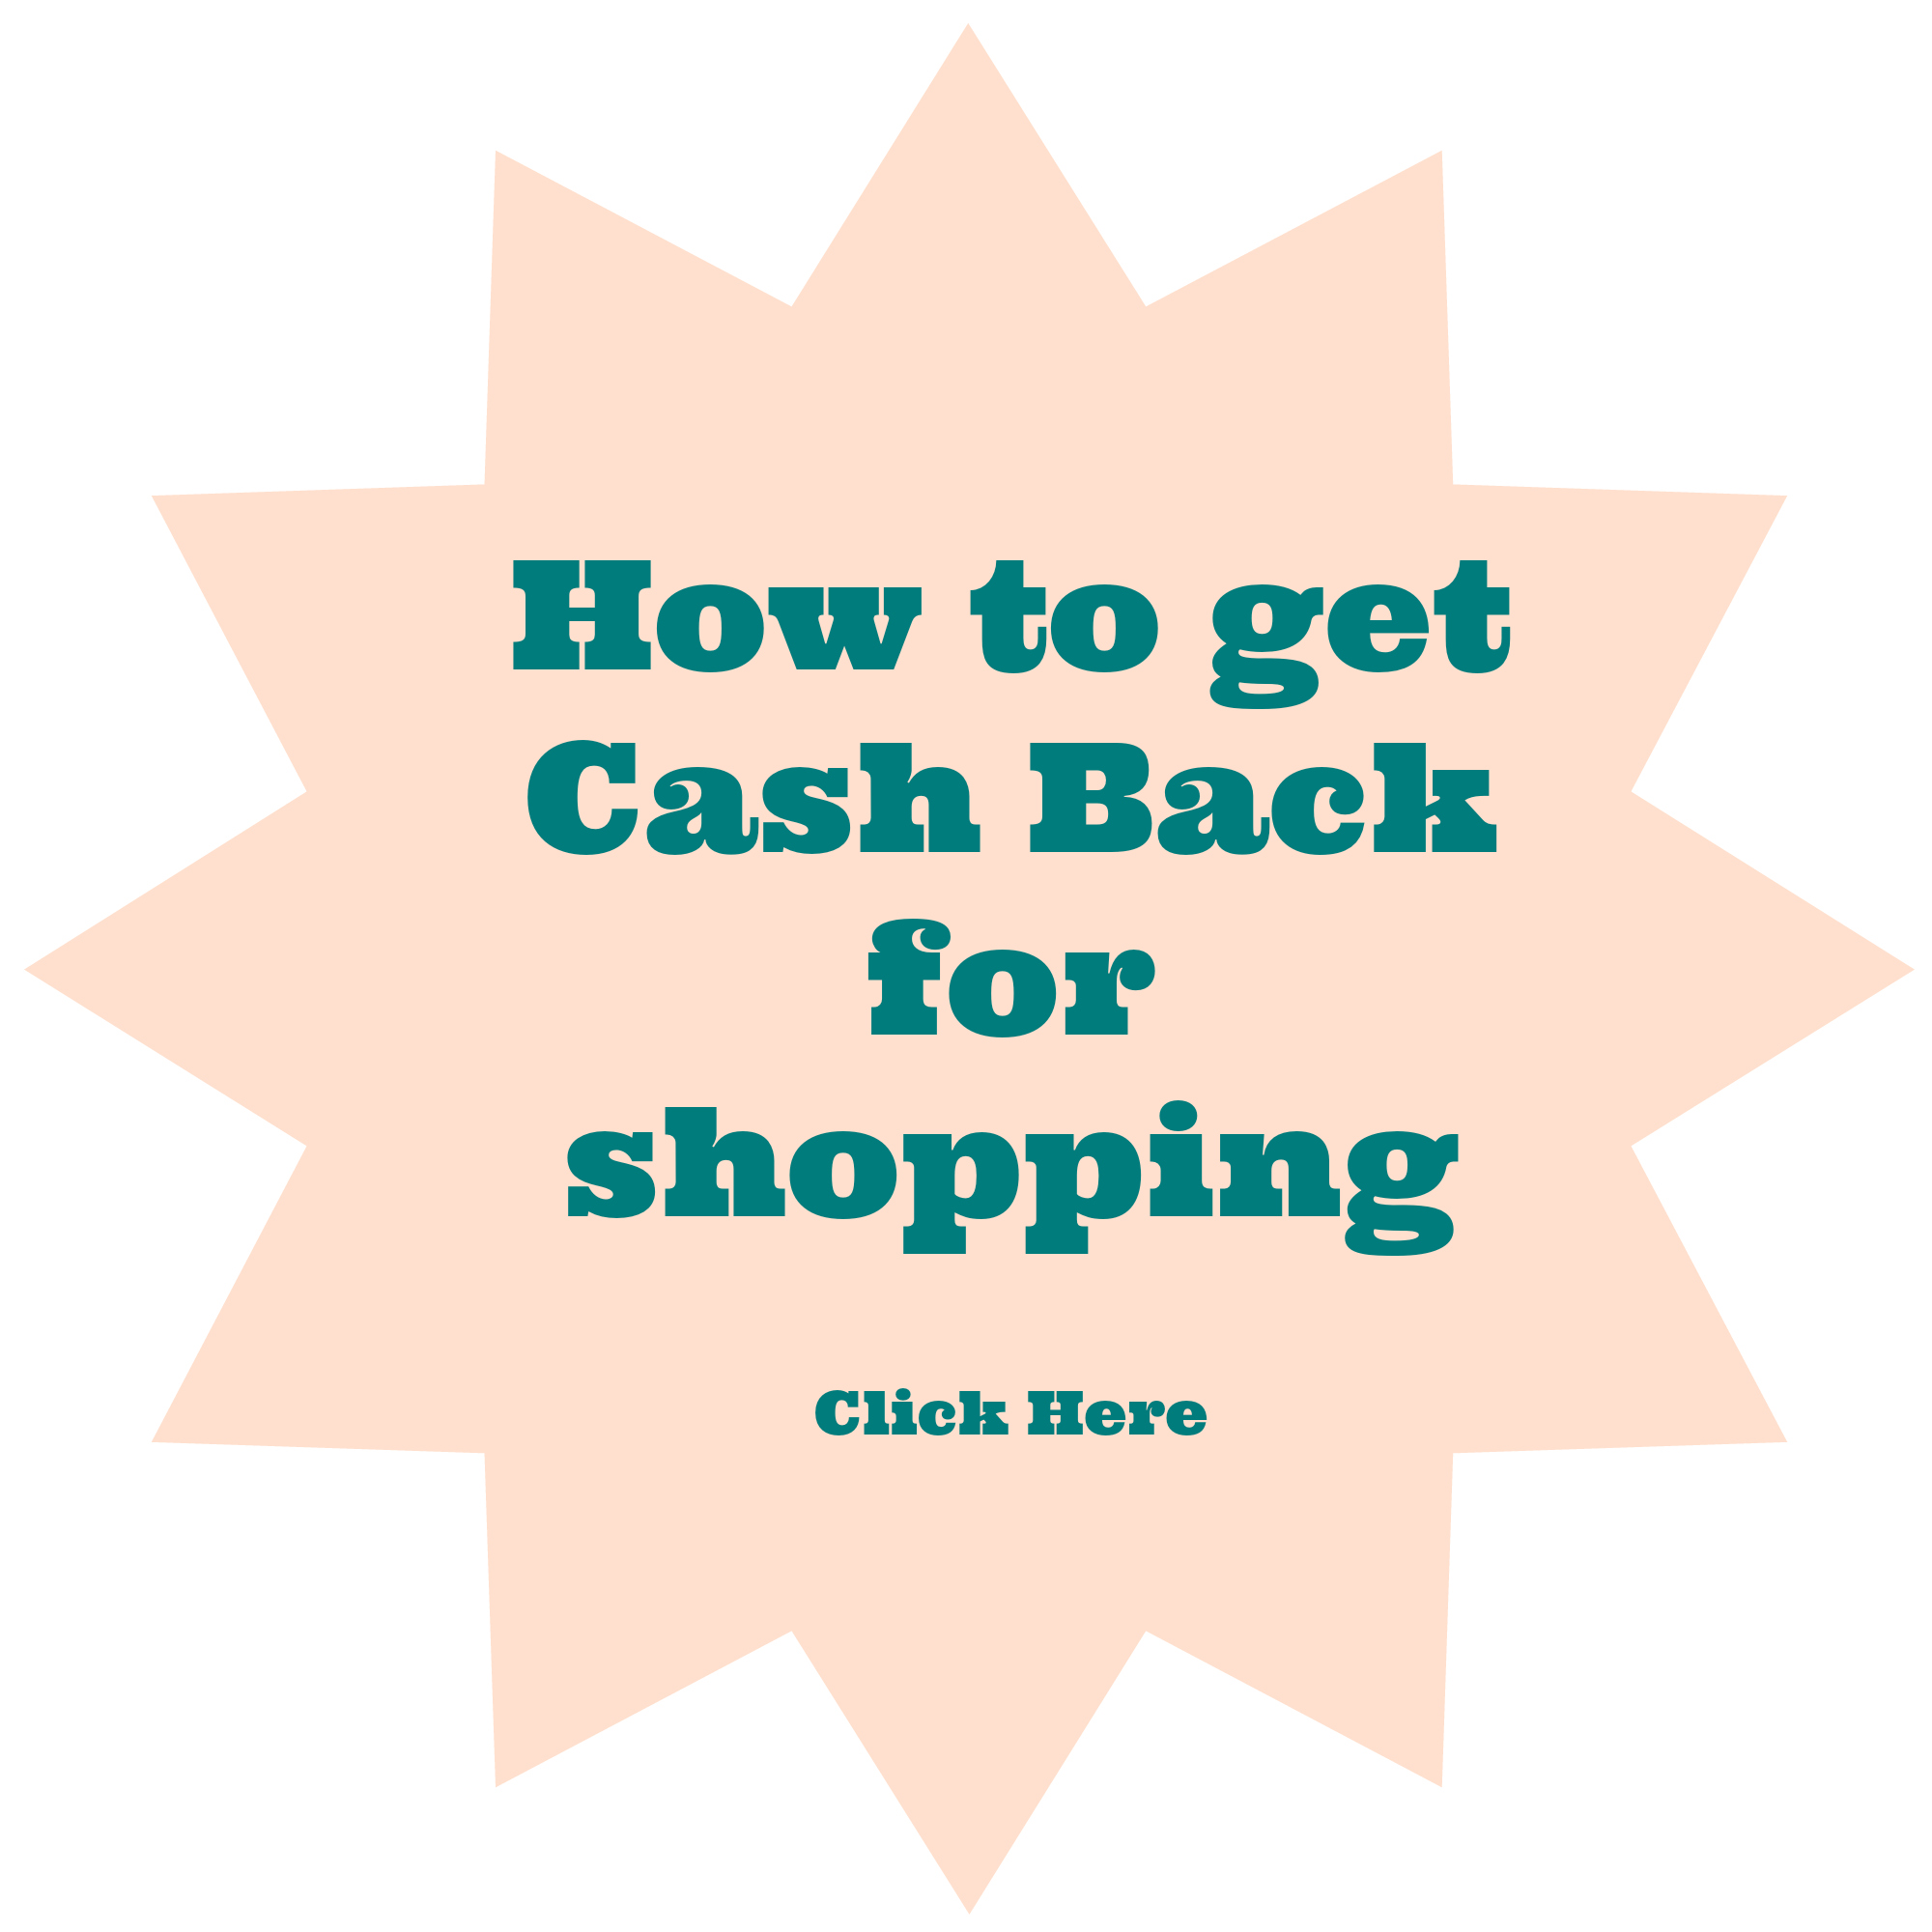 How to get Cash Back for Shopping